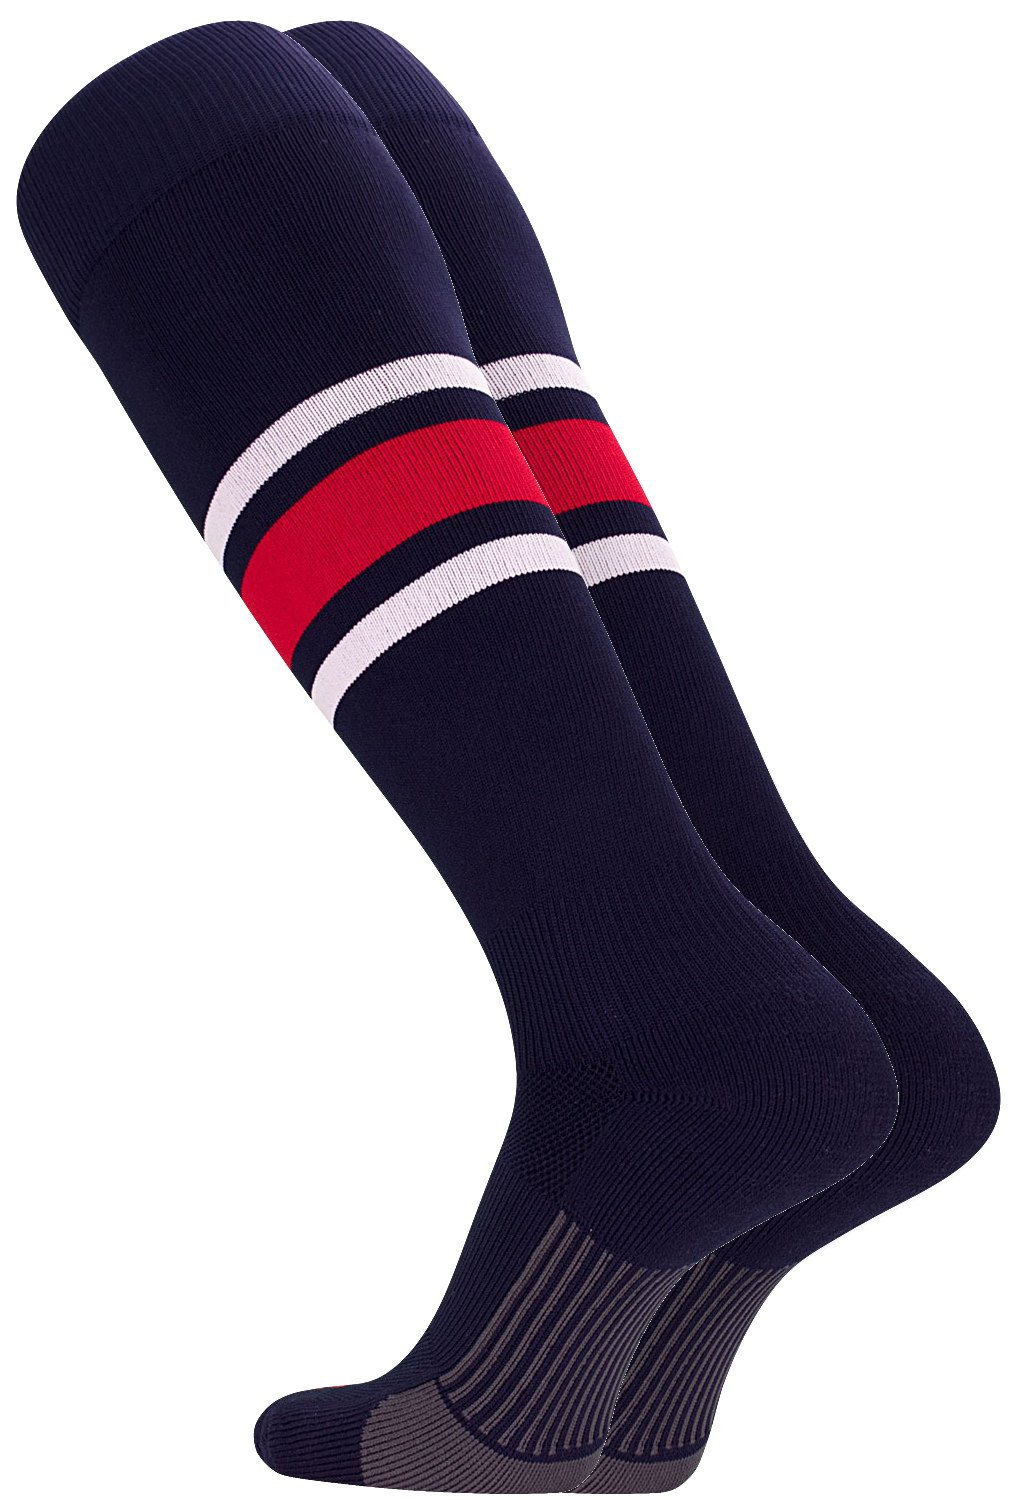 TCK Performance Baseball/Softball Socks (Navy/White/Scarlet, Large)